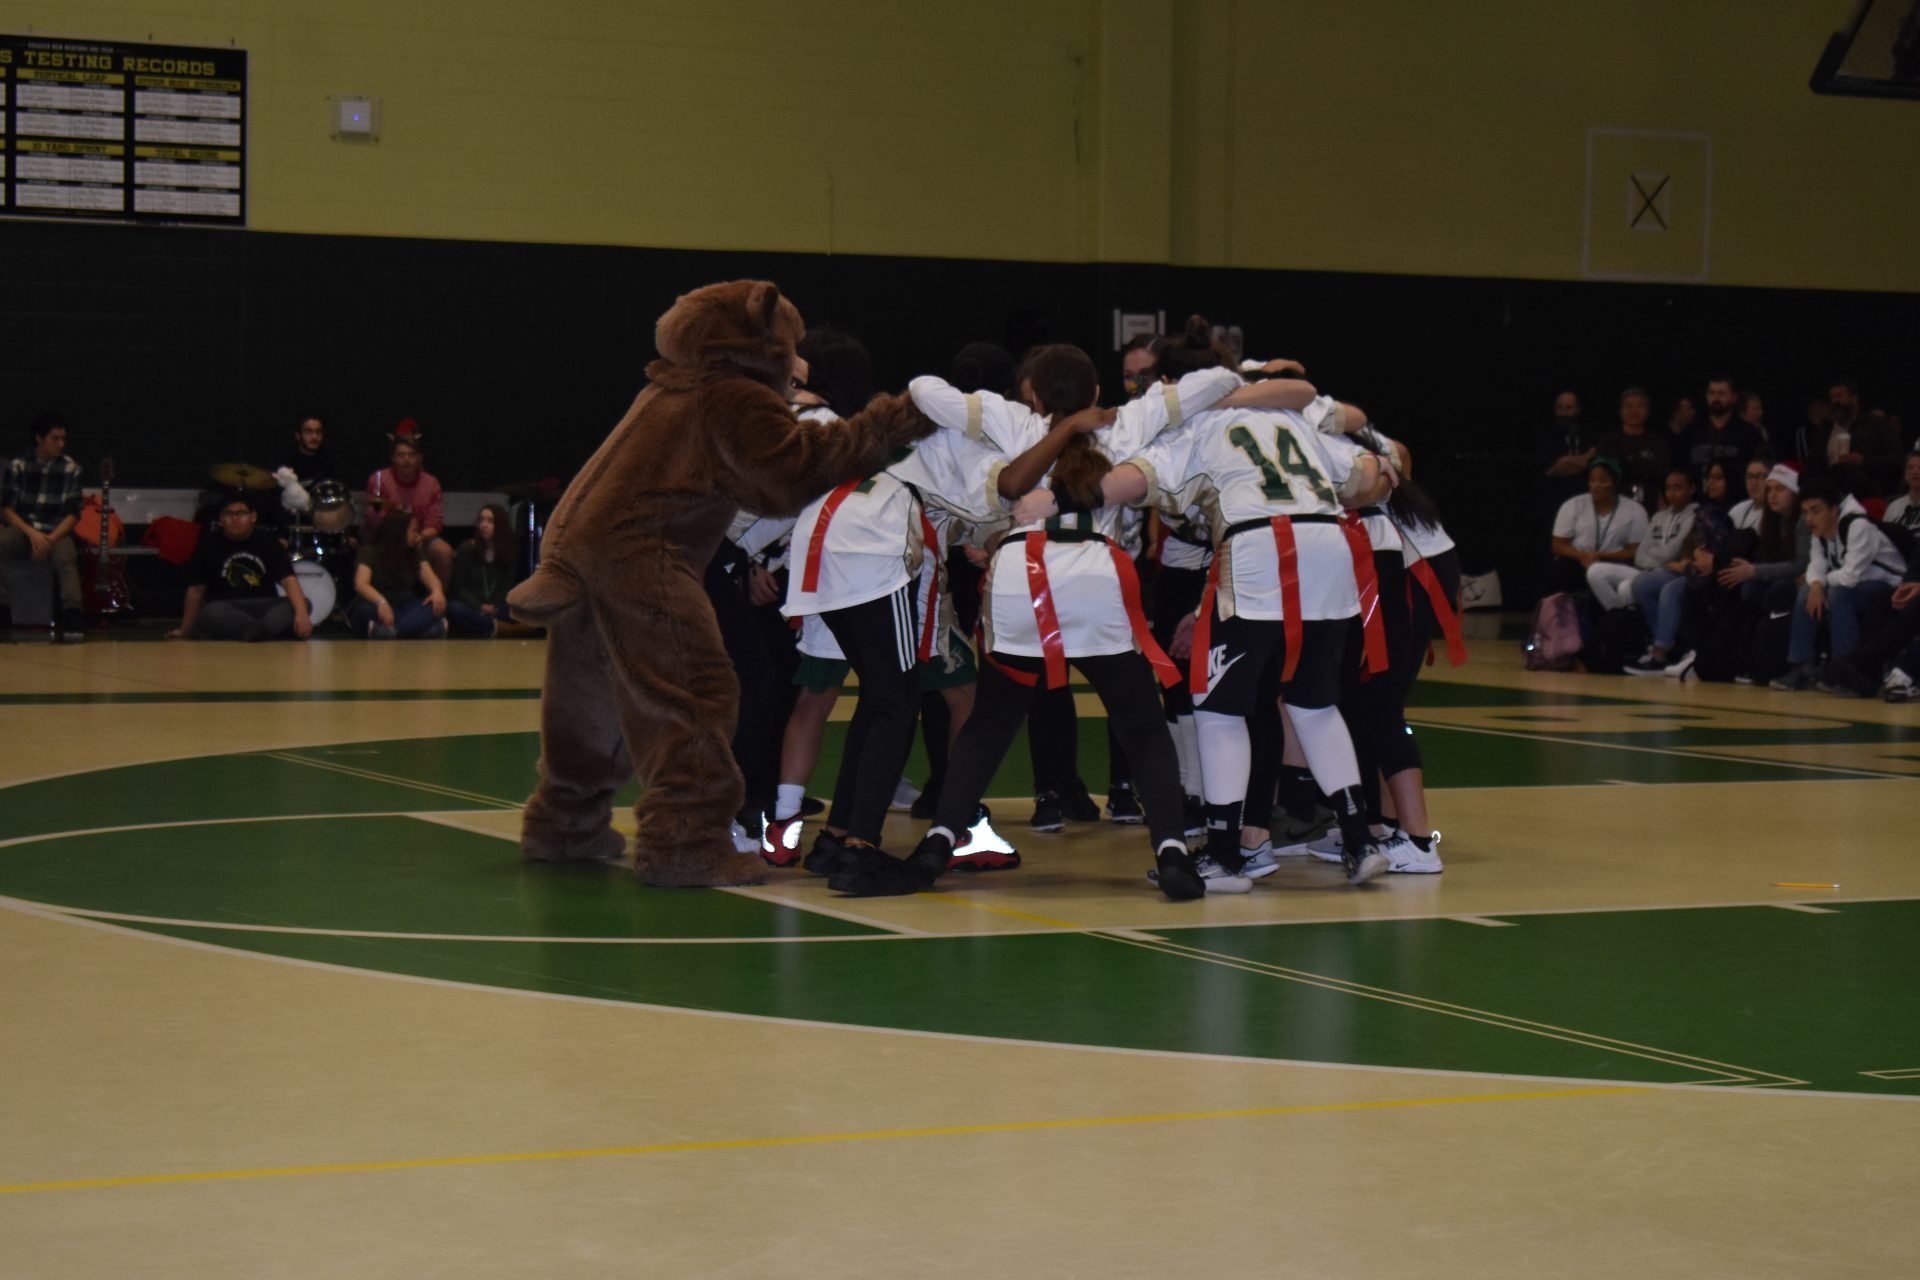 Artie the Artisan, Voc-Tech's mascot, joins in the huddle during halftime.